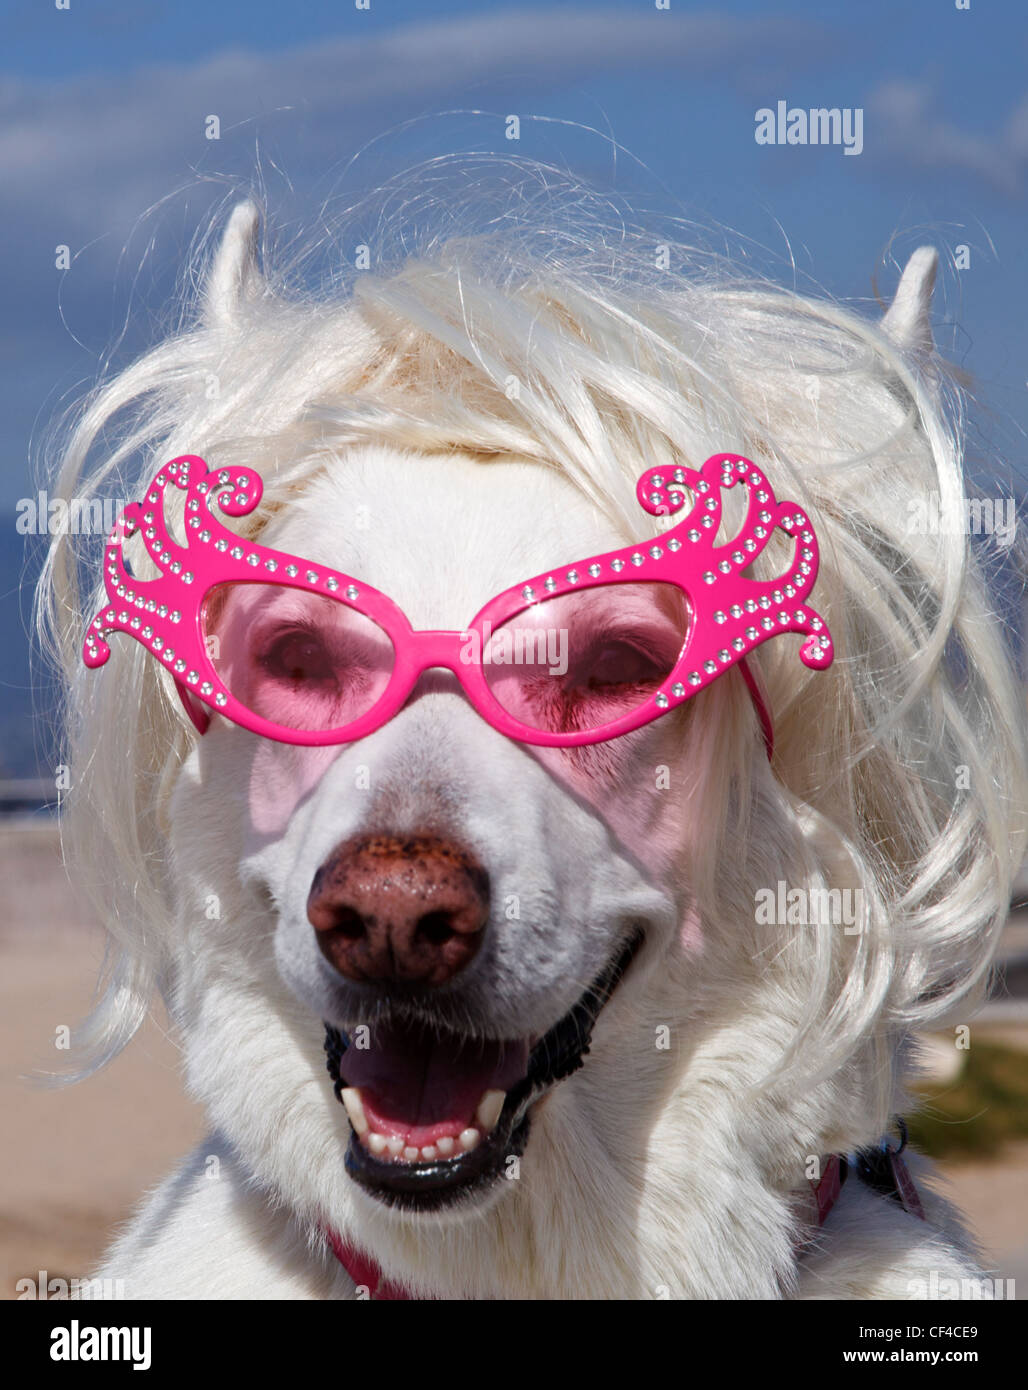 White German Shepherd wearing wig and sunglasses with beach in background - Stock Image